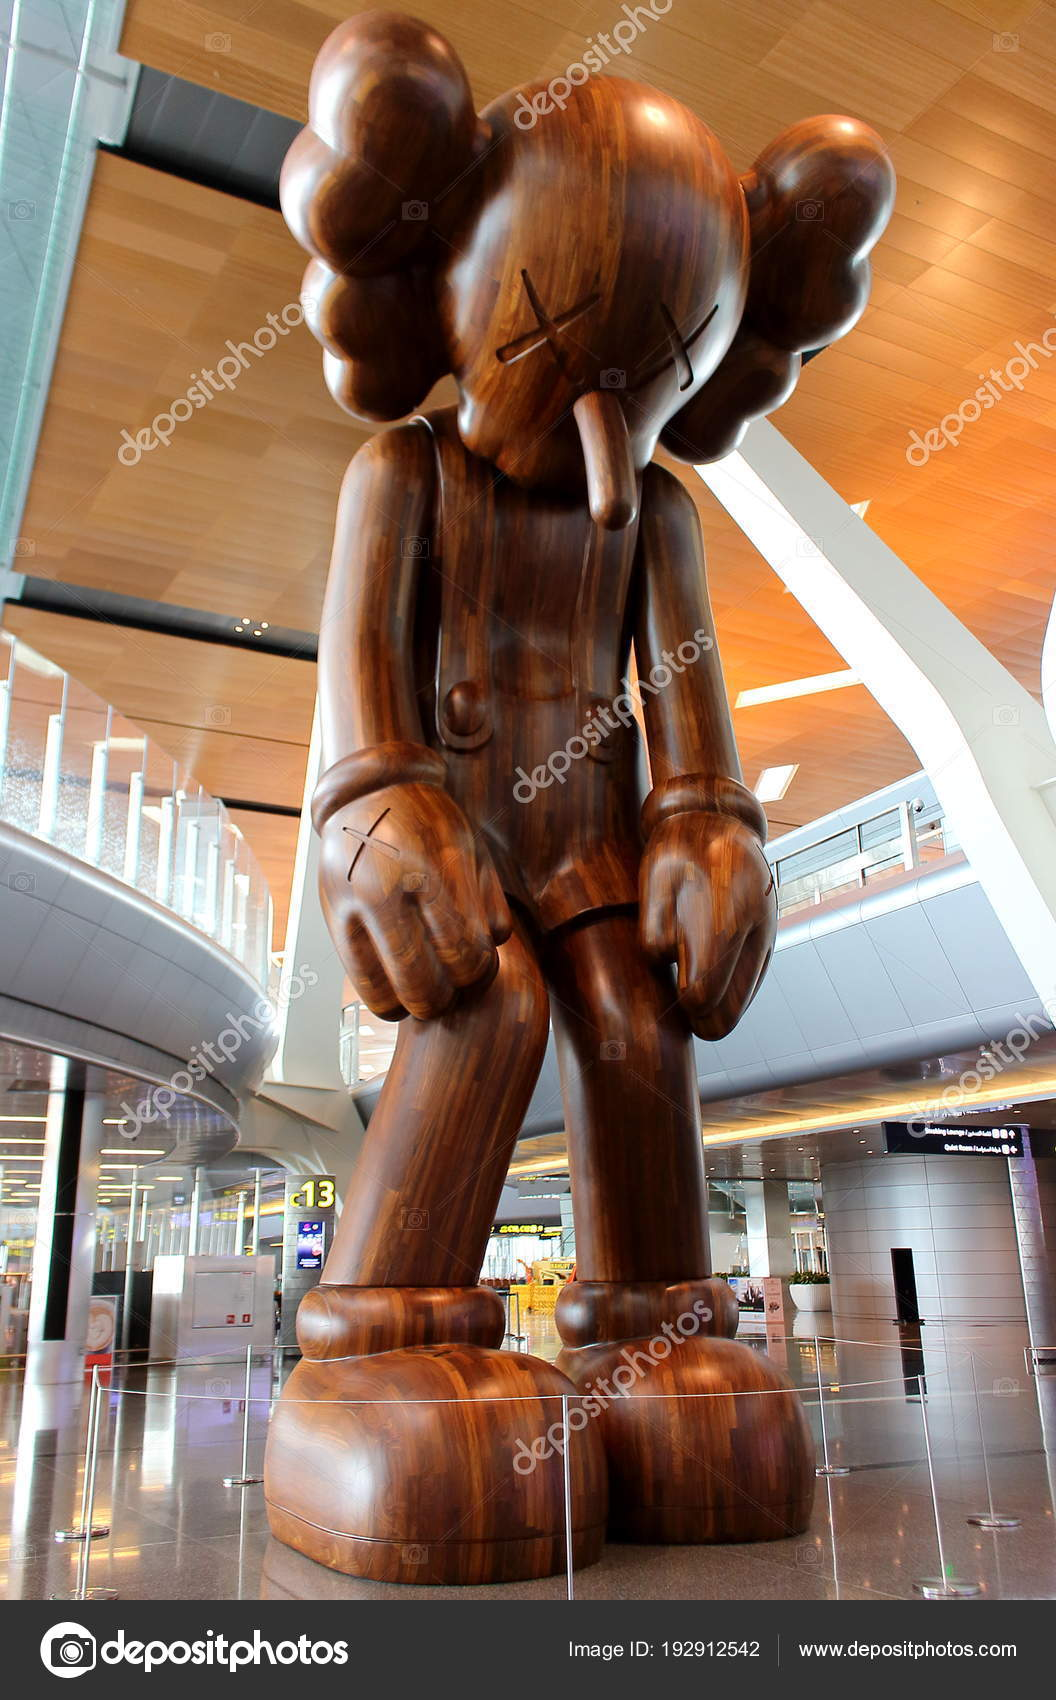 585ee75b Wooden marionette SMALL LIE from Brian Donnelly the american pop artist and  designer known professionally as KAWS. Soft focus — Photo by Al.geba